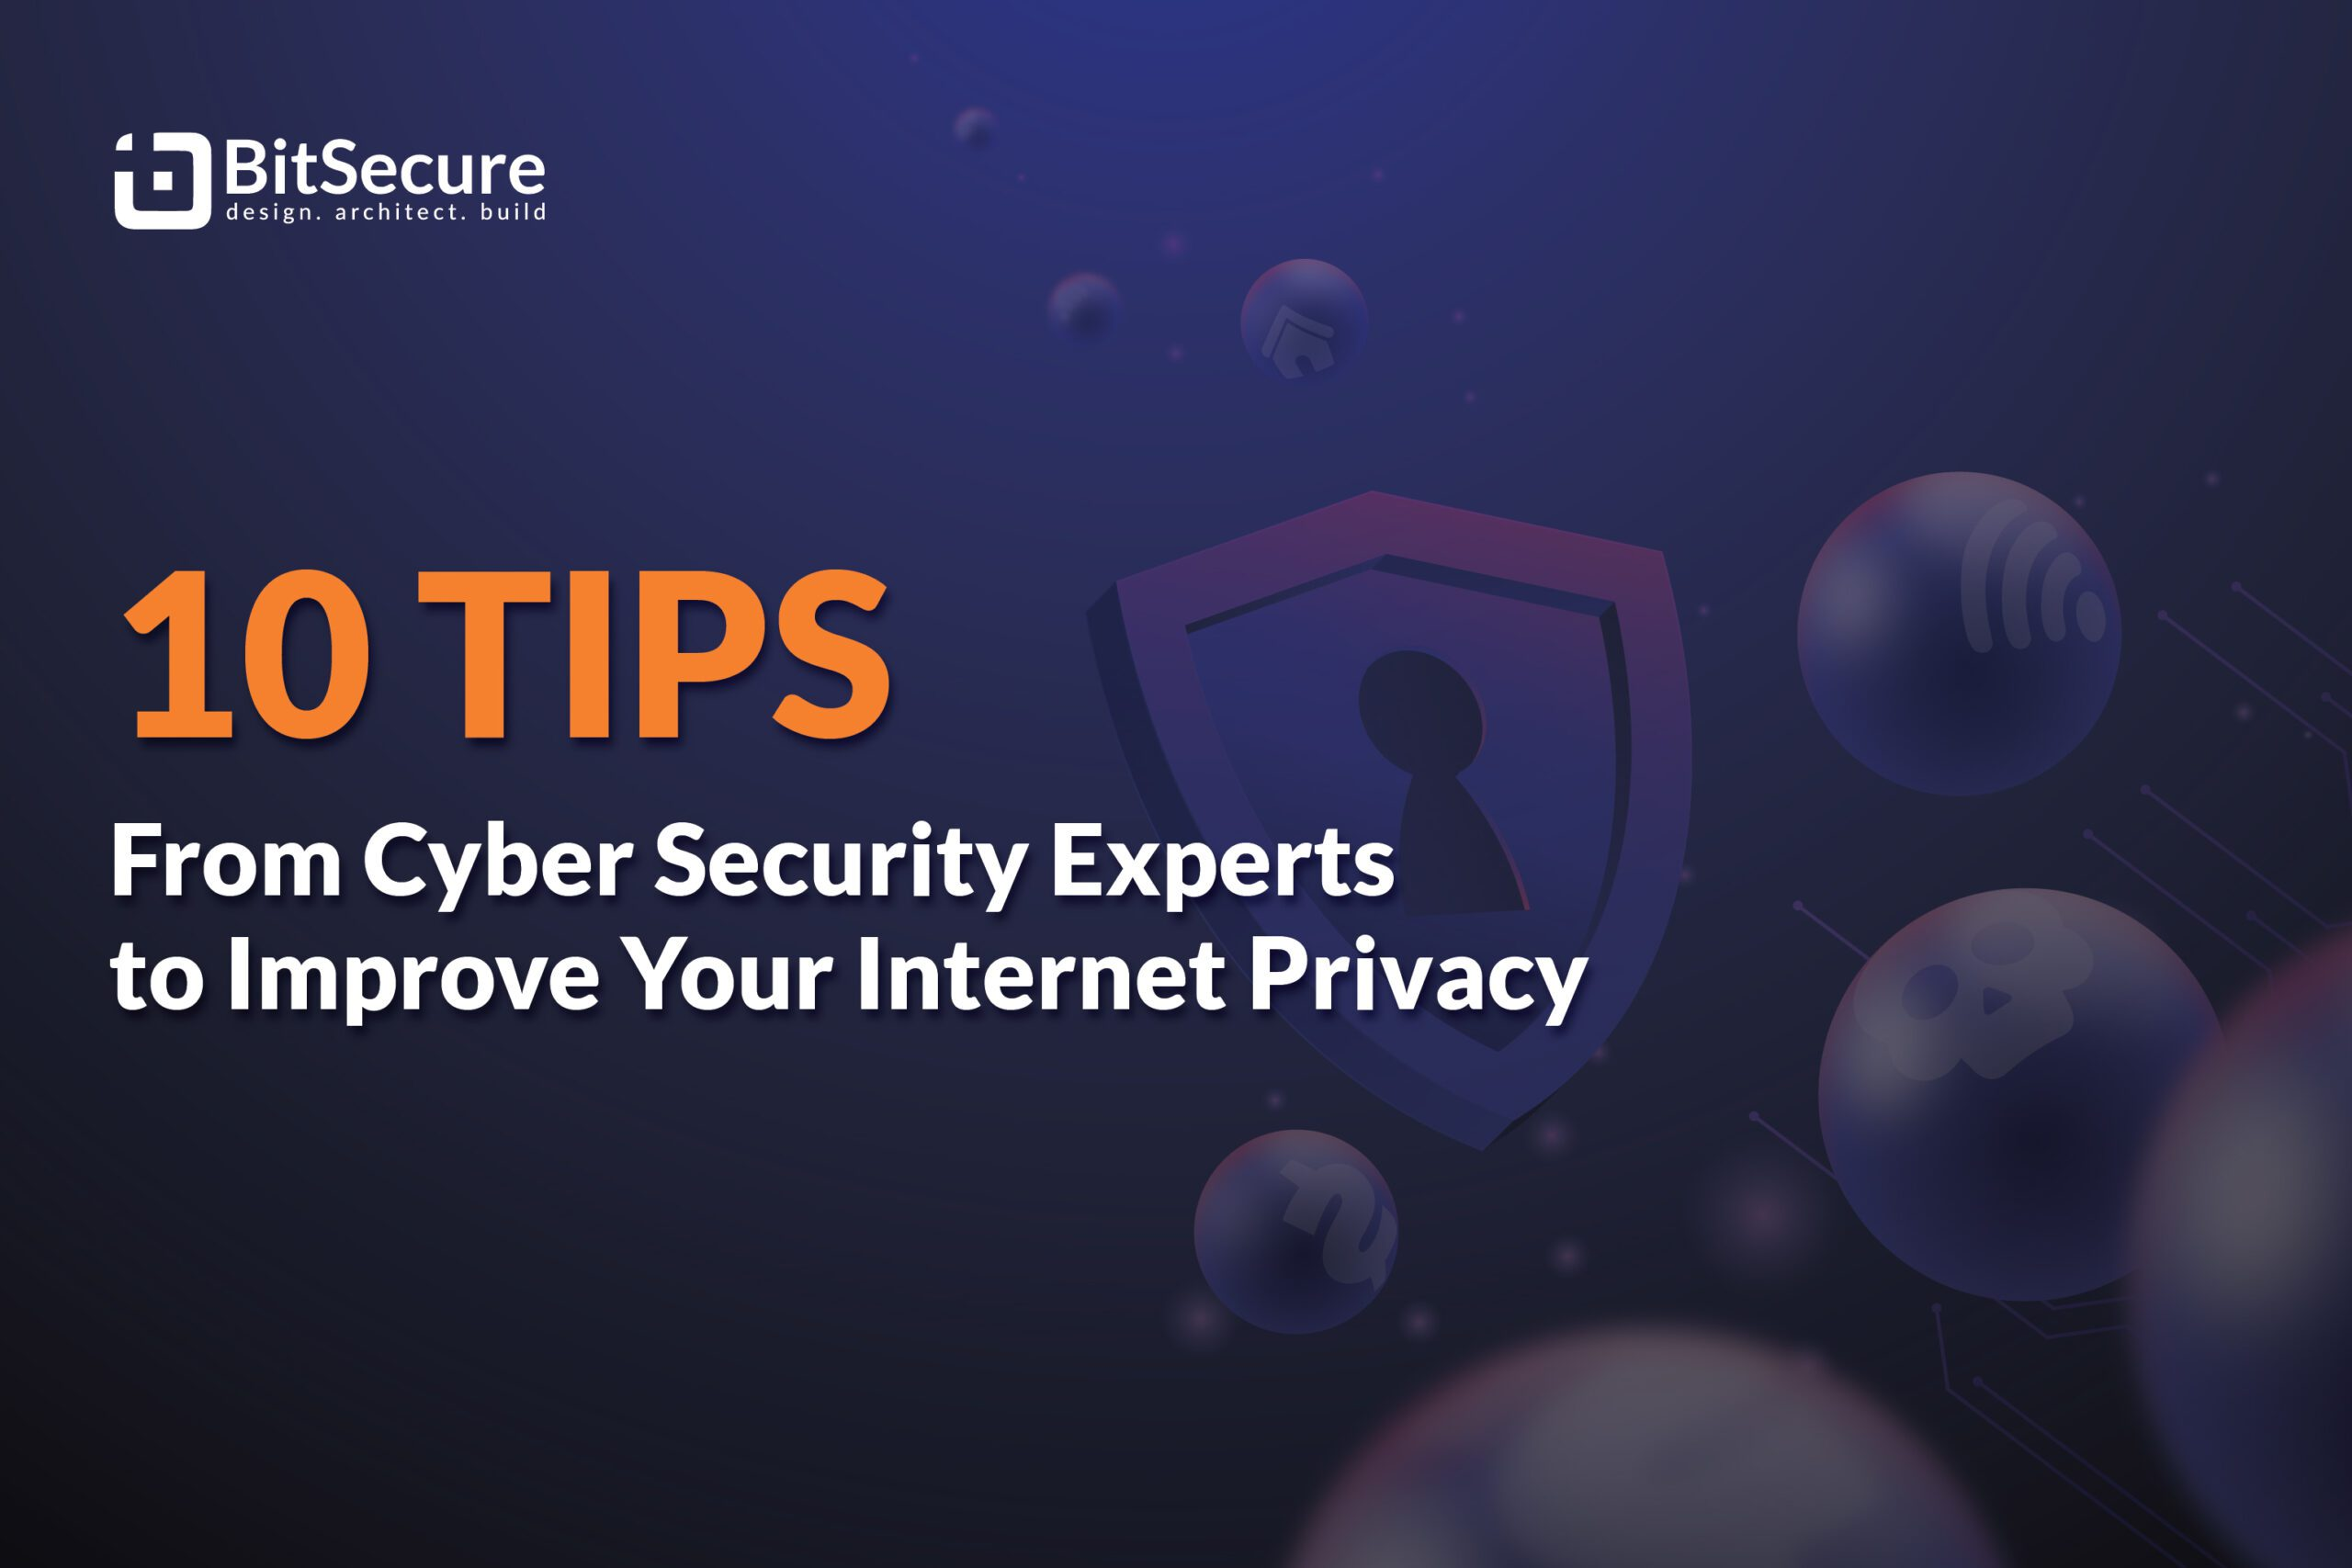 10 Tips from Cyber Security Experts to Improve Your Internet Privacy